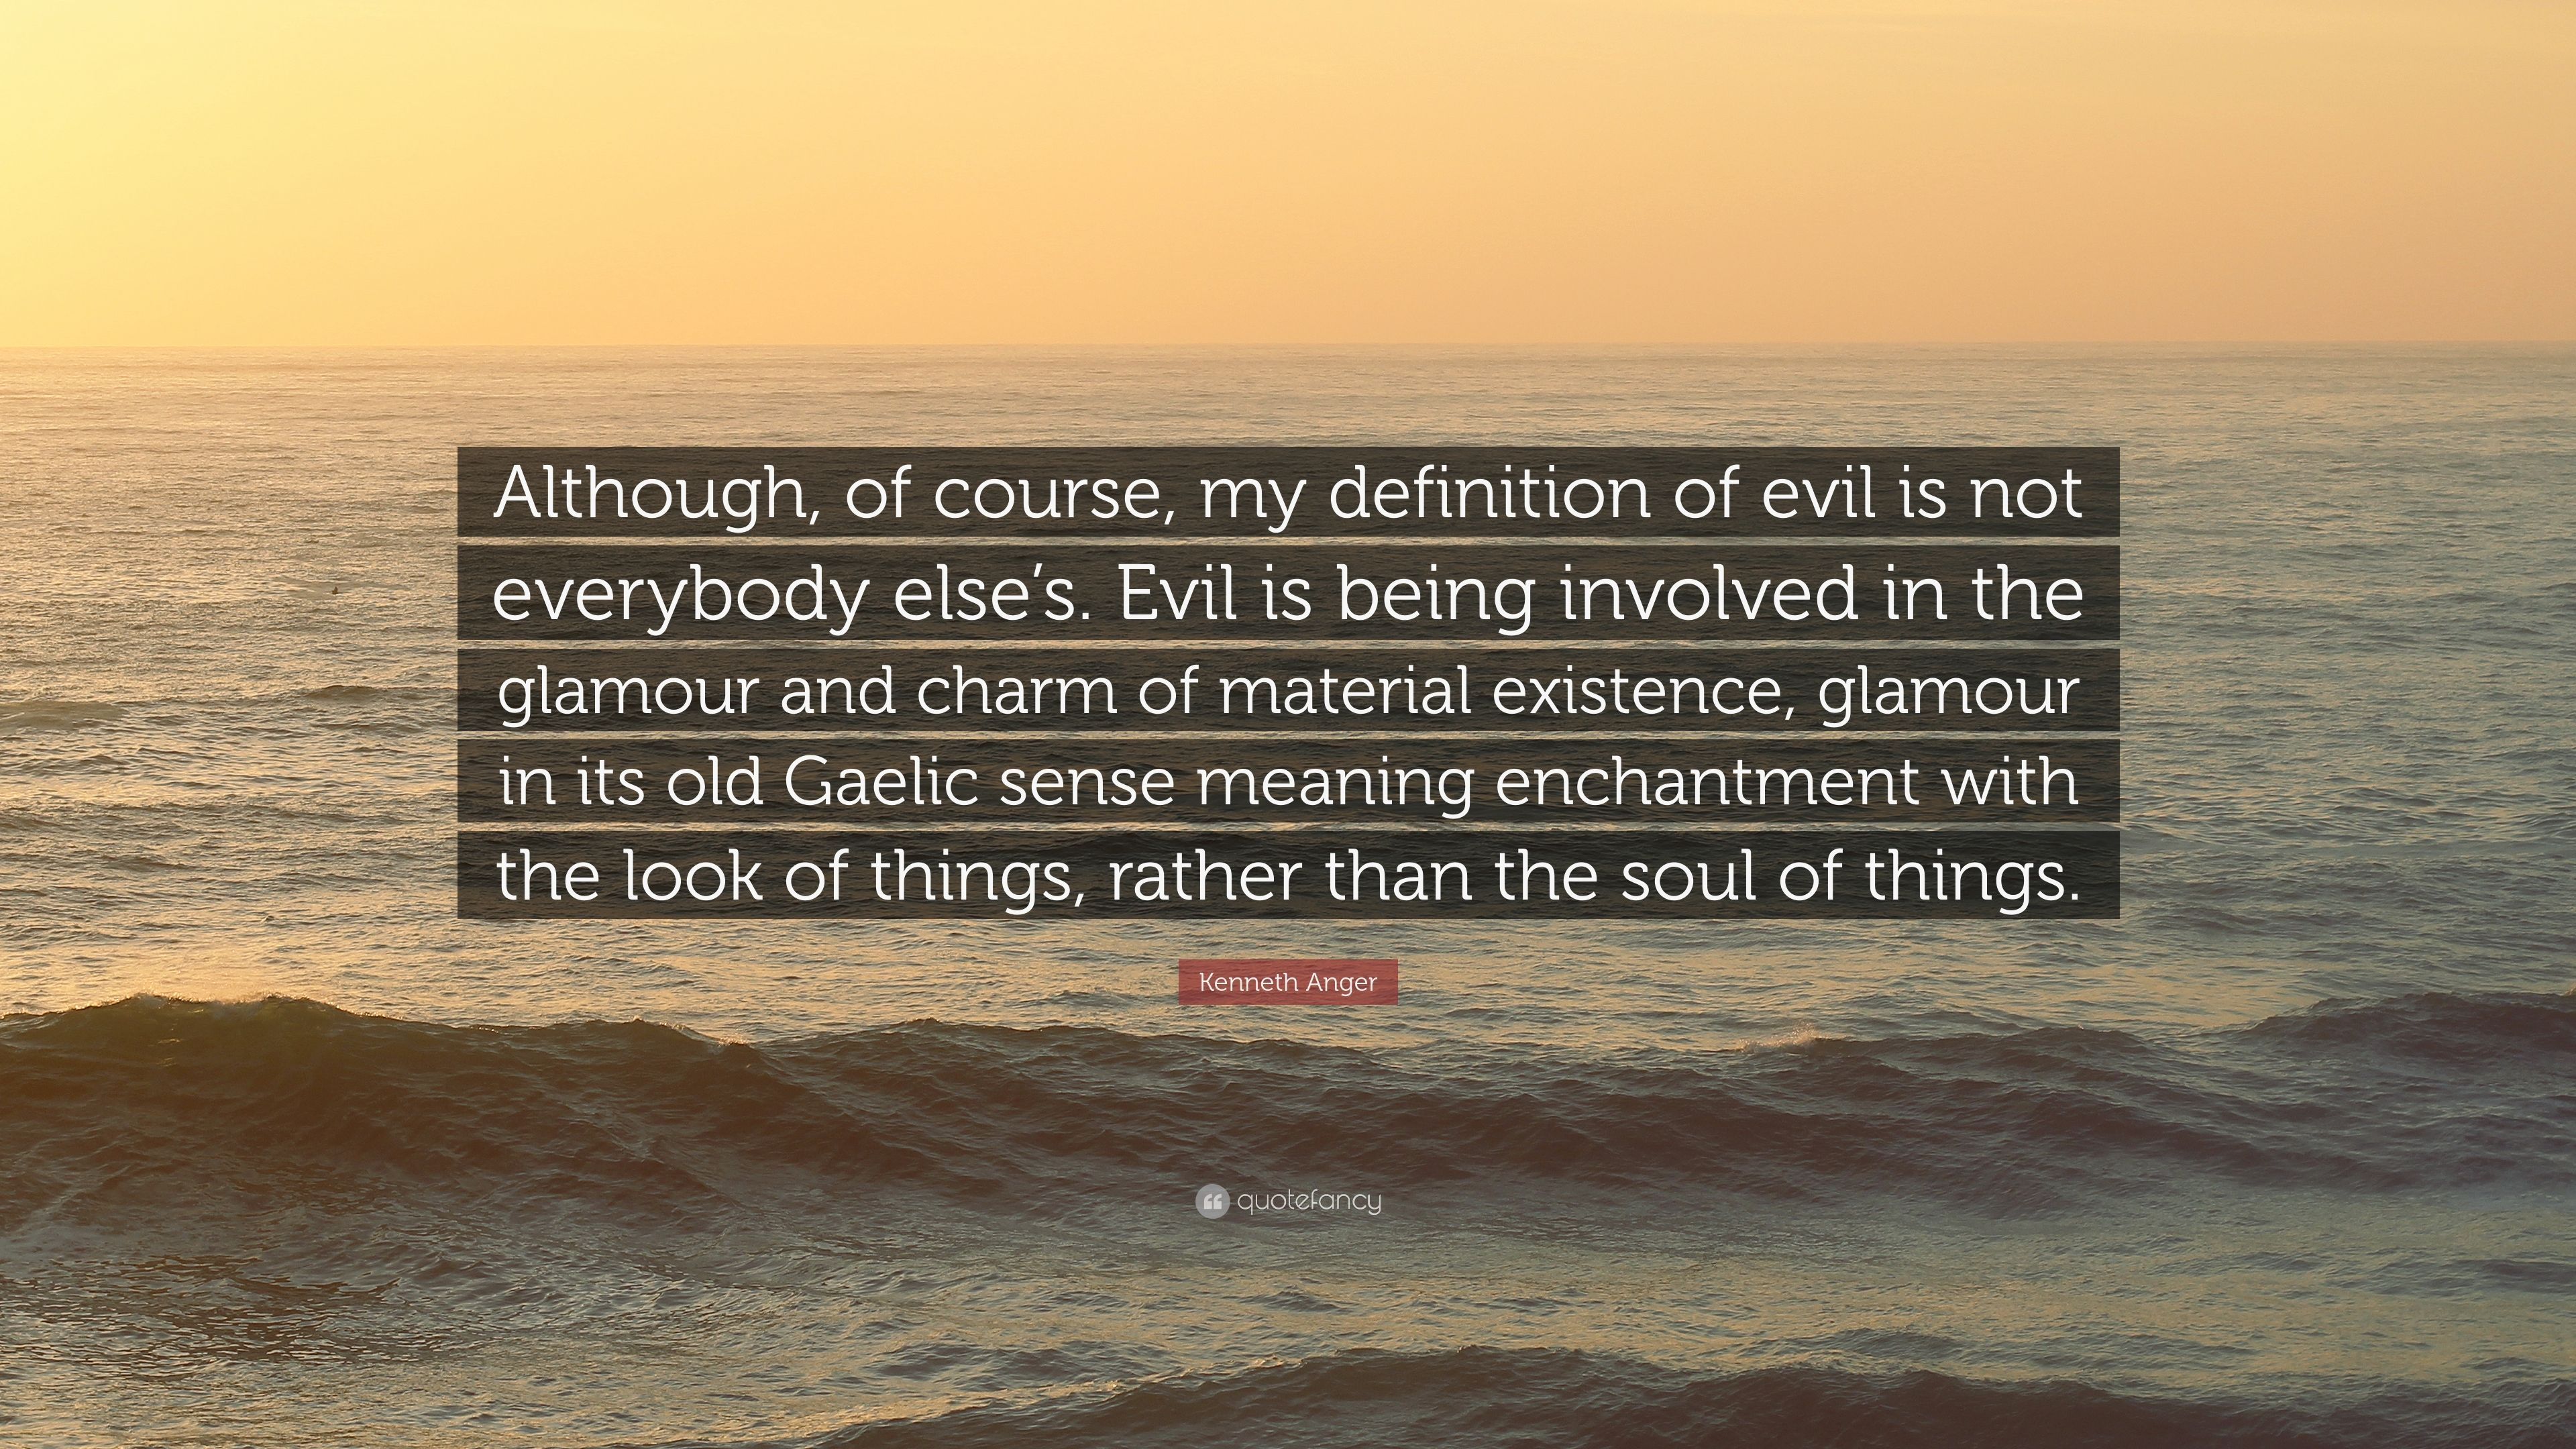 Kenneth Anger Quote: U201cAlthough, Of Course, My Definition Of Evil Is Not